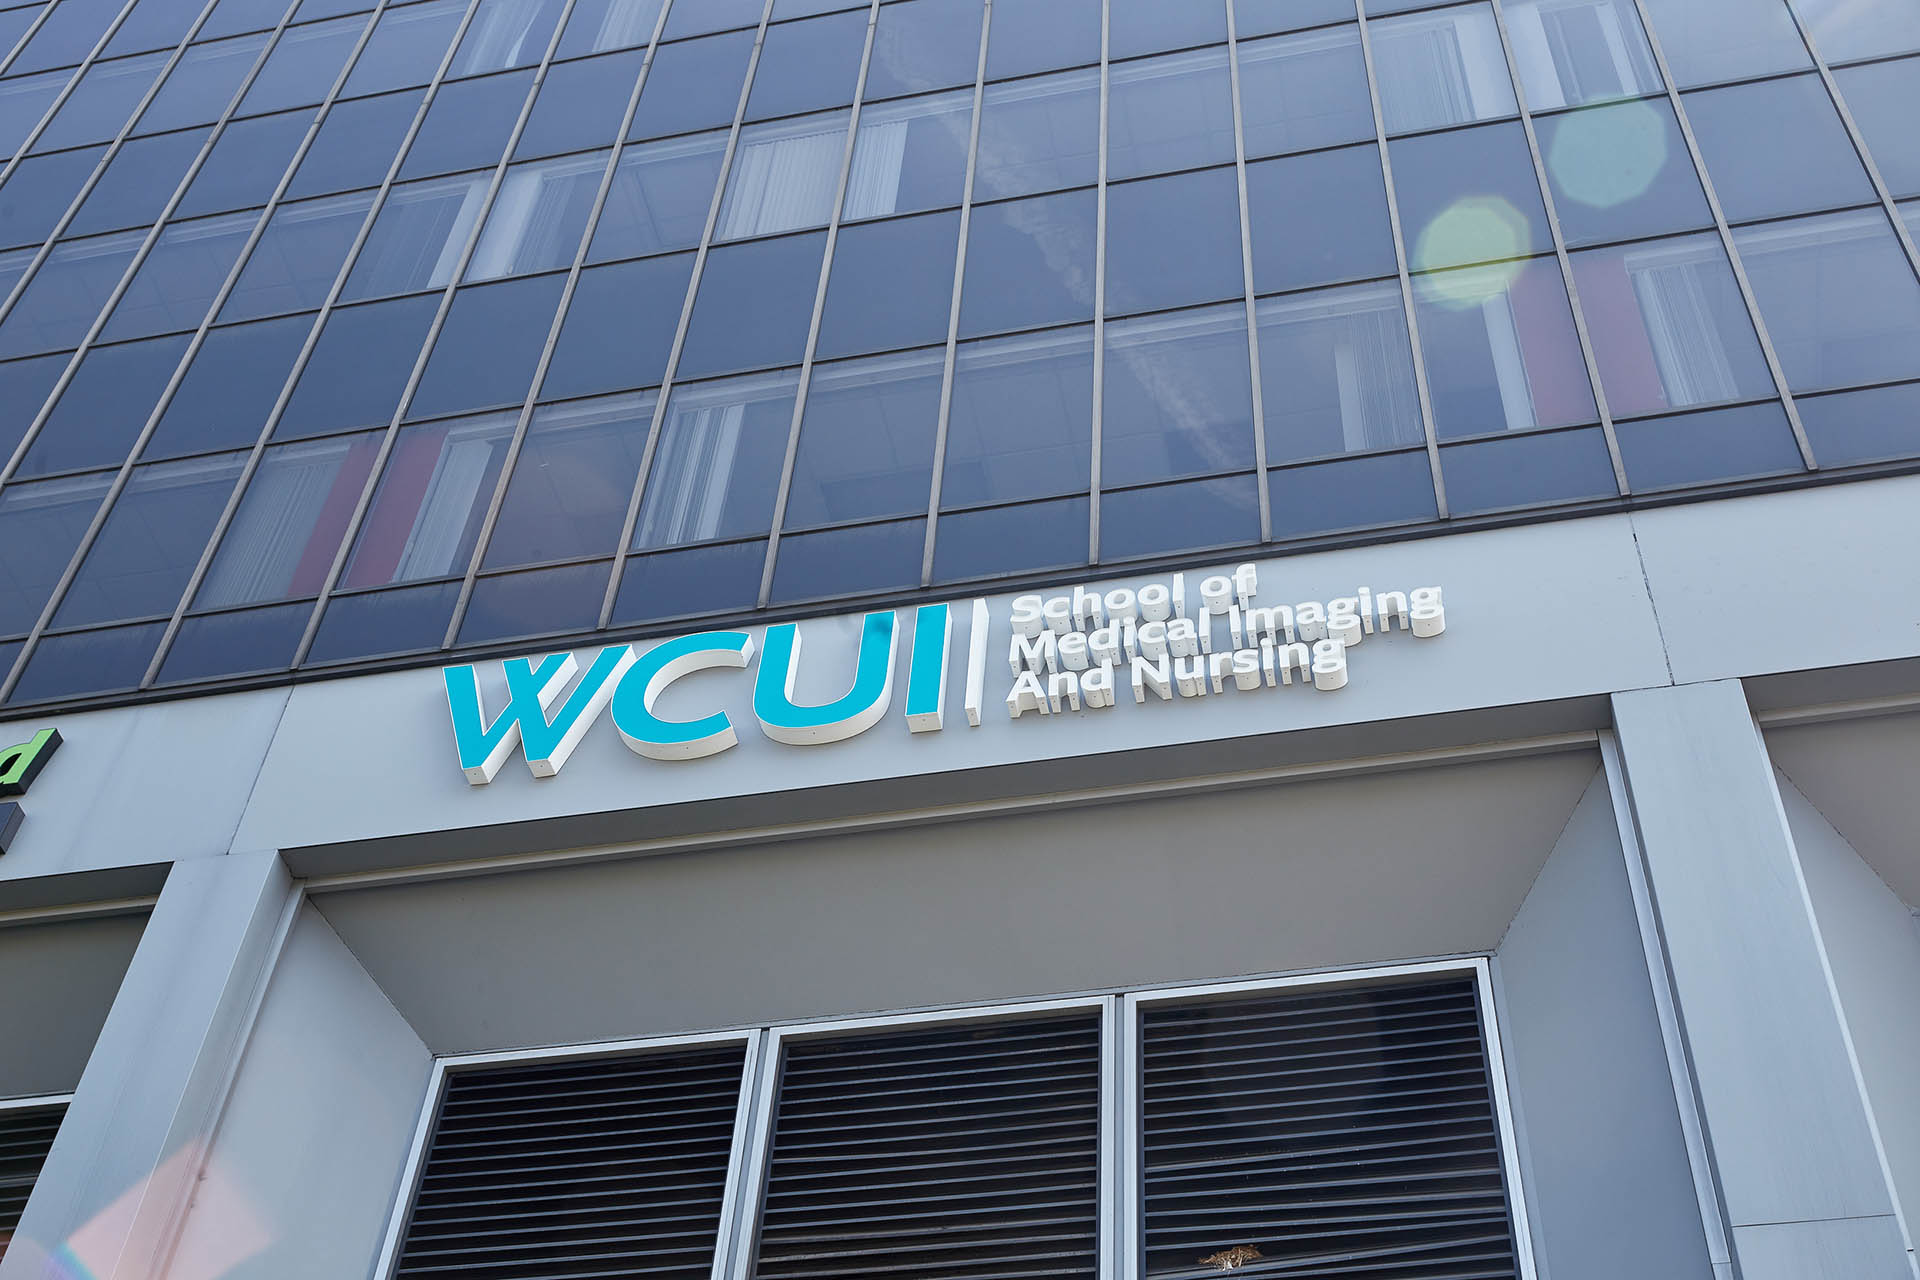 WCUI Los Angeles Campus